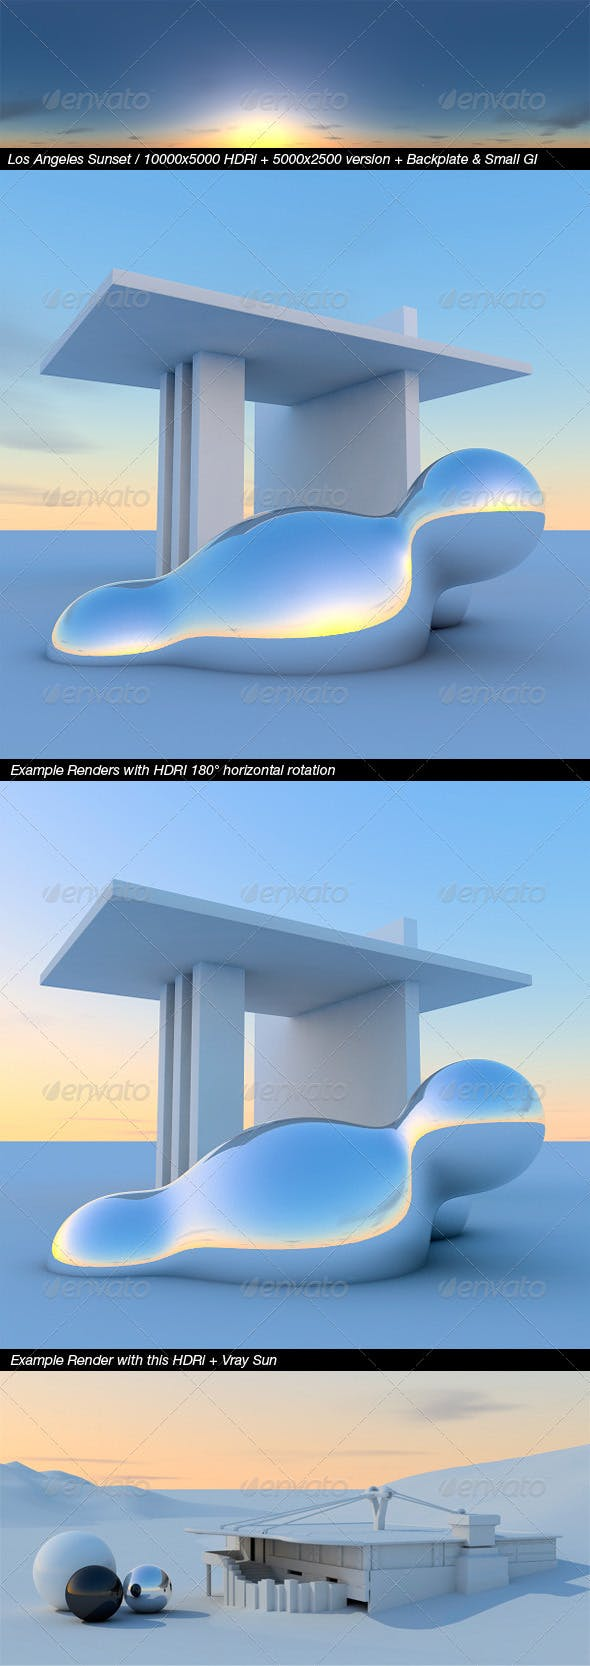 HDRi Los Angeles Sunset, 10000x5000+Backplates - 3DOcean Item for Sale